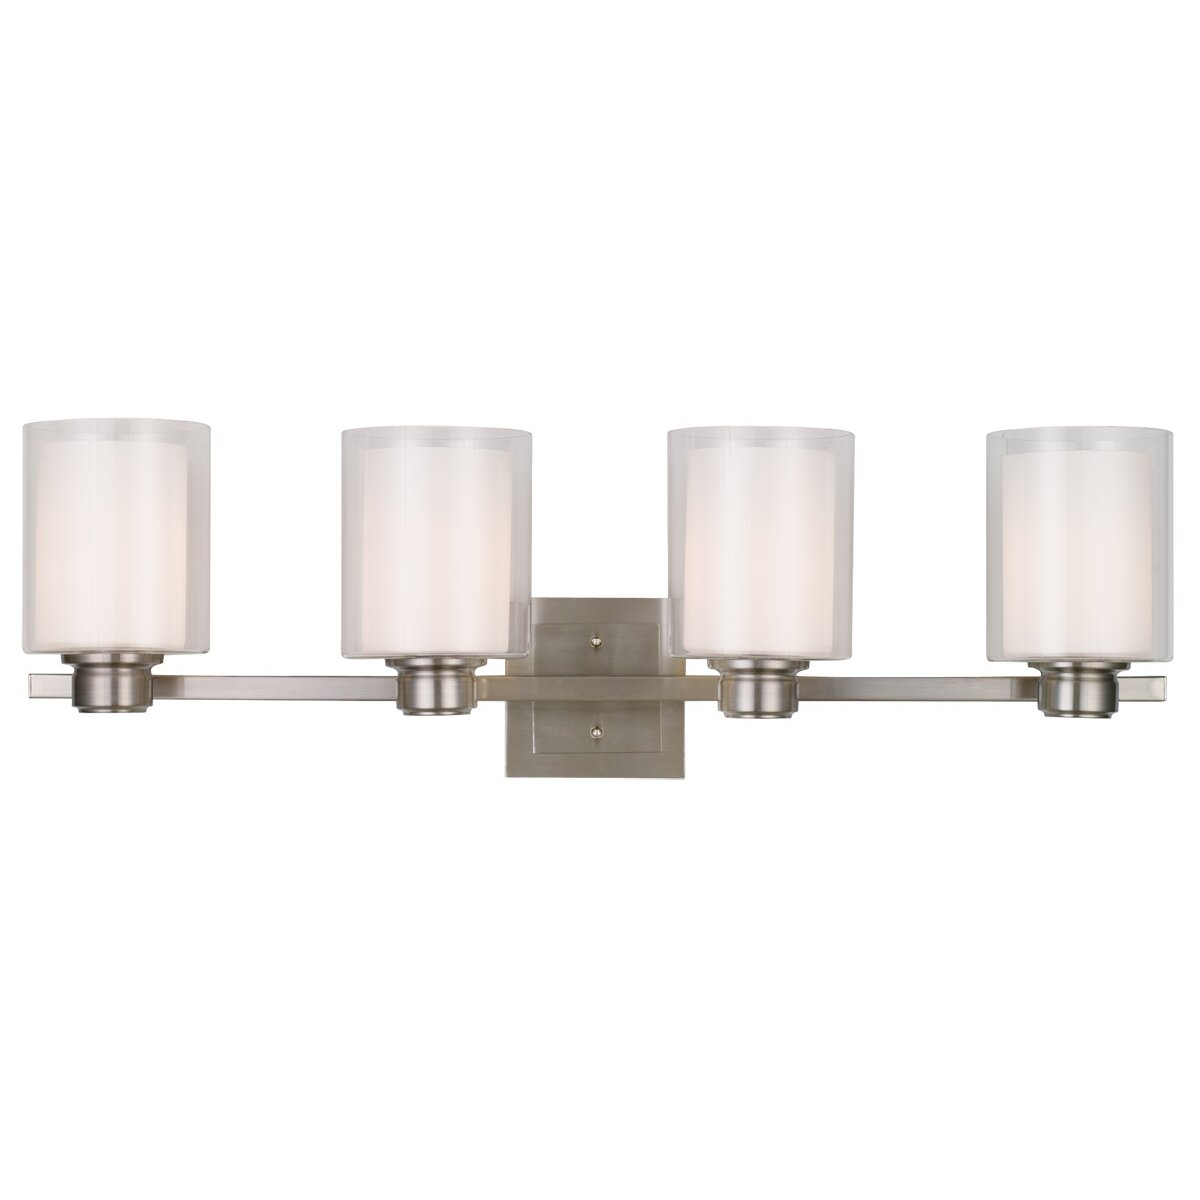 Design House Oslo 4 Light Bath Vanity Light Reviews Wayfair